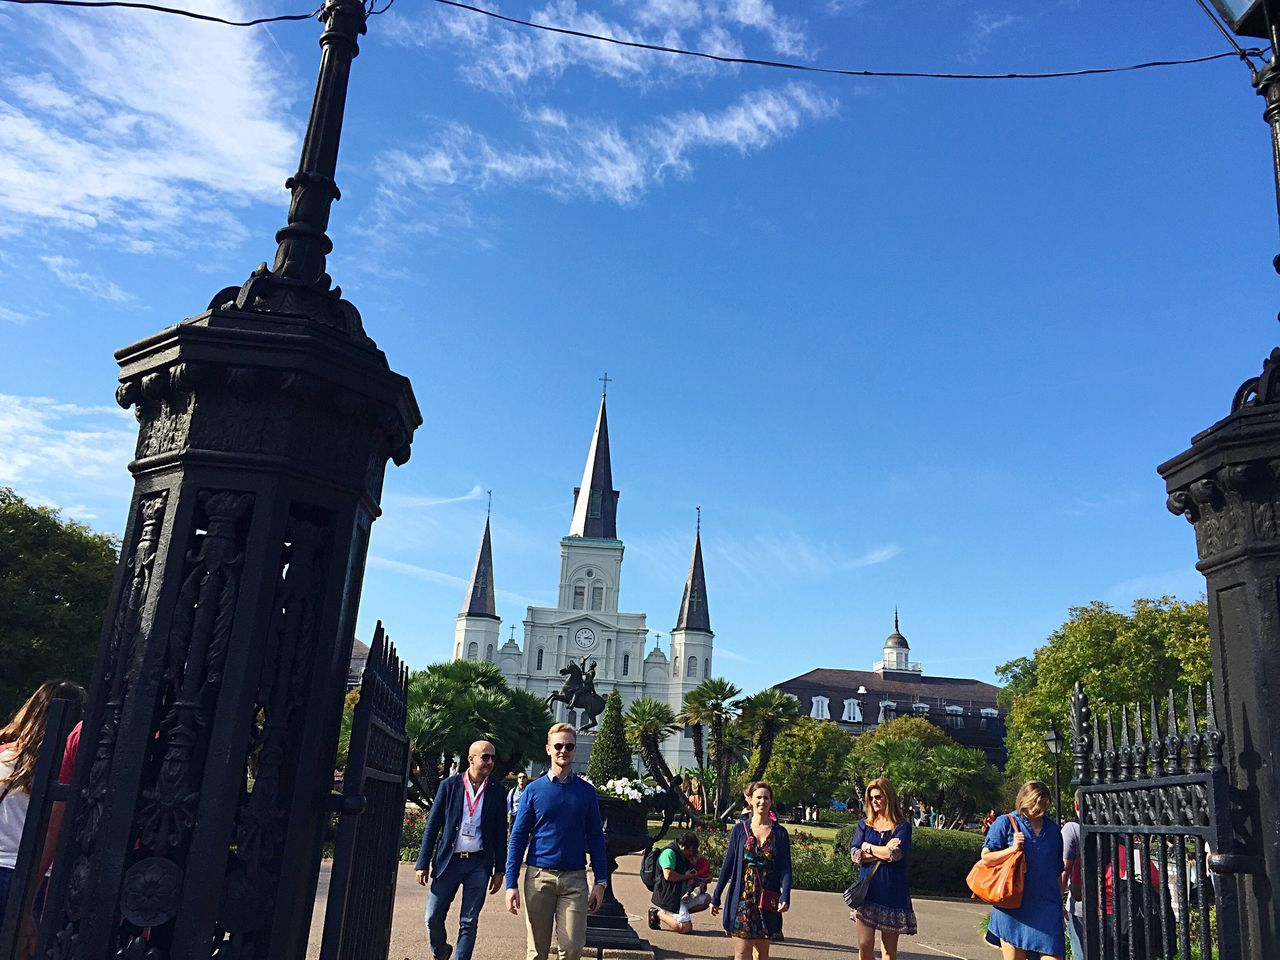 Real People Building Exterior Architecture Men Built Structure Women Travel Destinations Large Group Of People Sky Outdoors Religion Lifestyles Day City Spirituality Place Of Worship Statue City Gate People Adult New Orleans Life New Orleans EyeEm New Orleans, LA Jackson Square St. Louis Cathedral